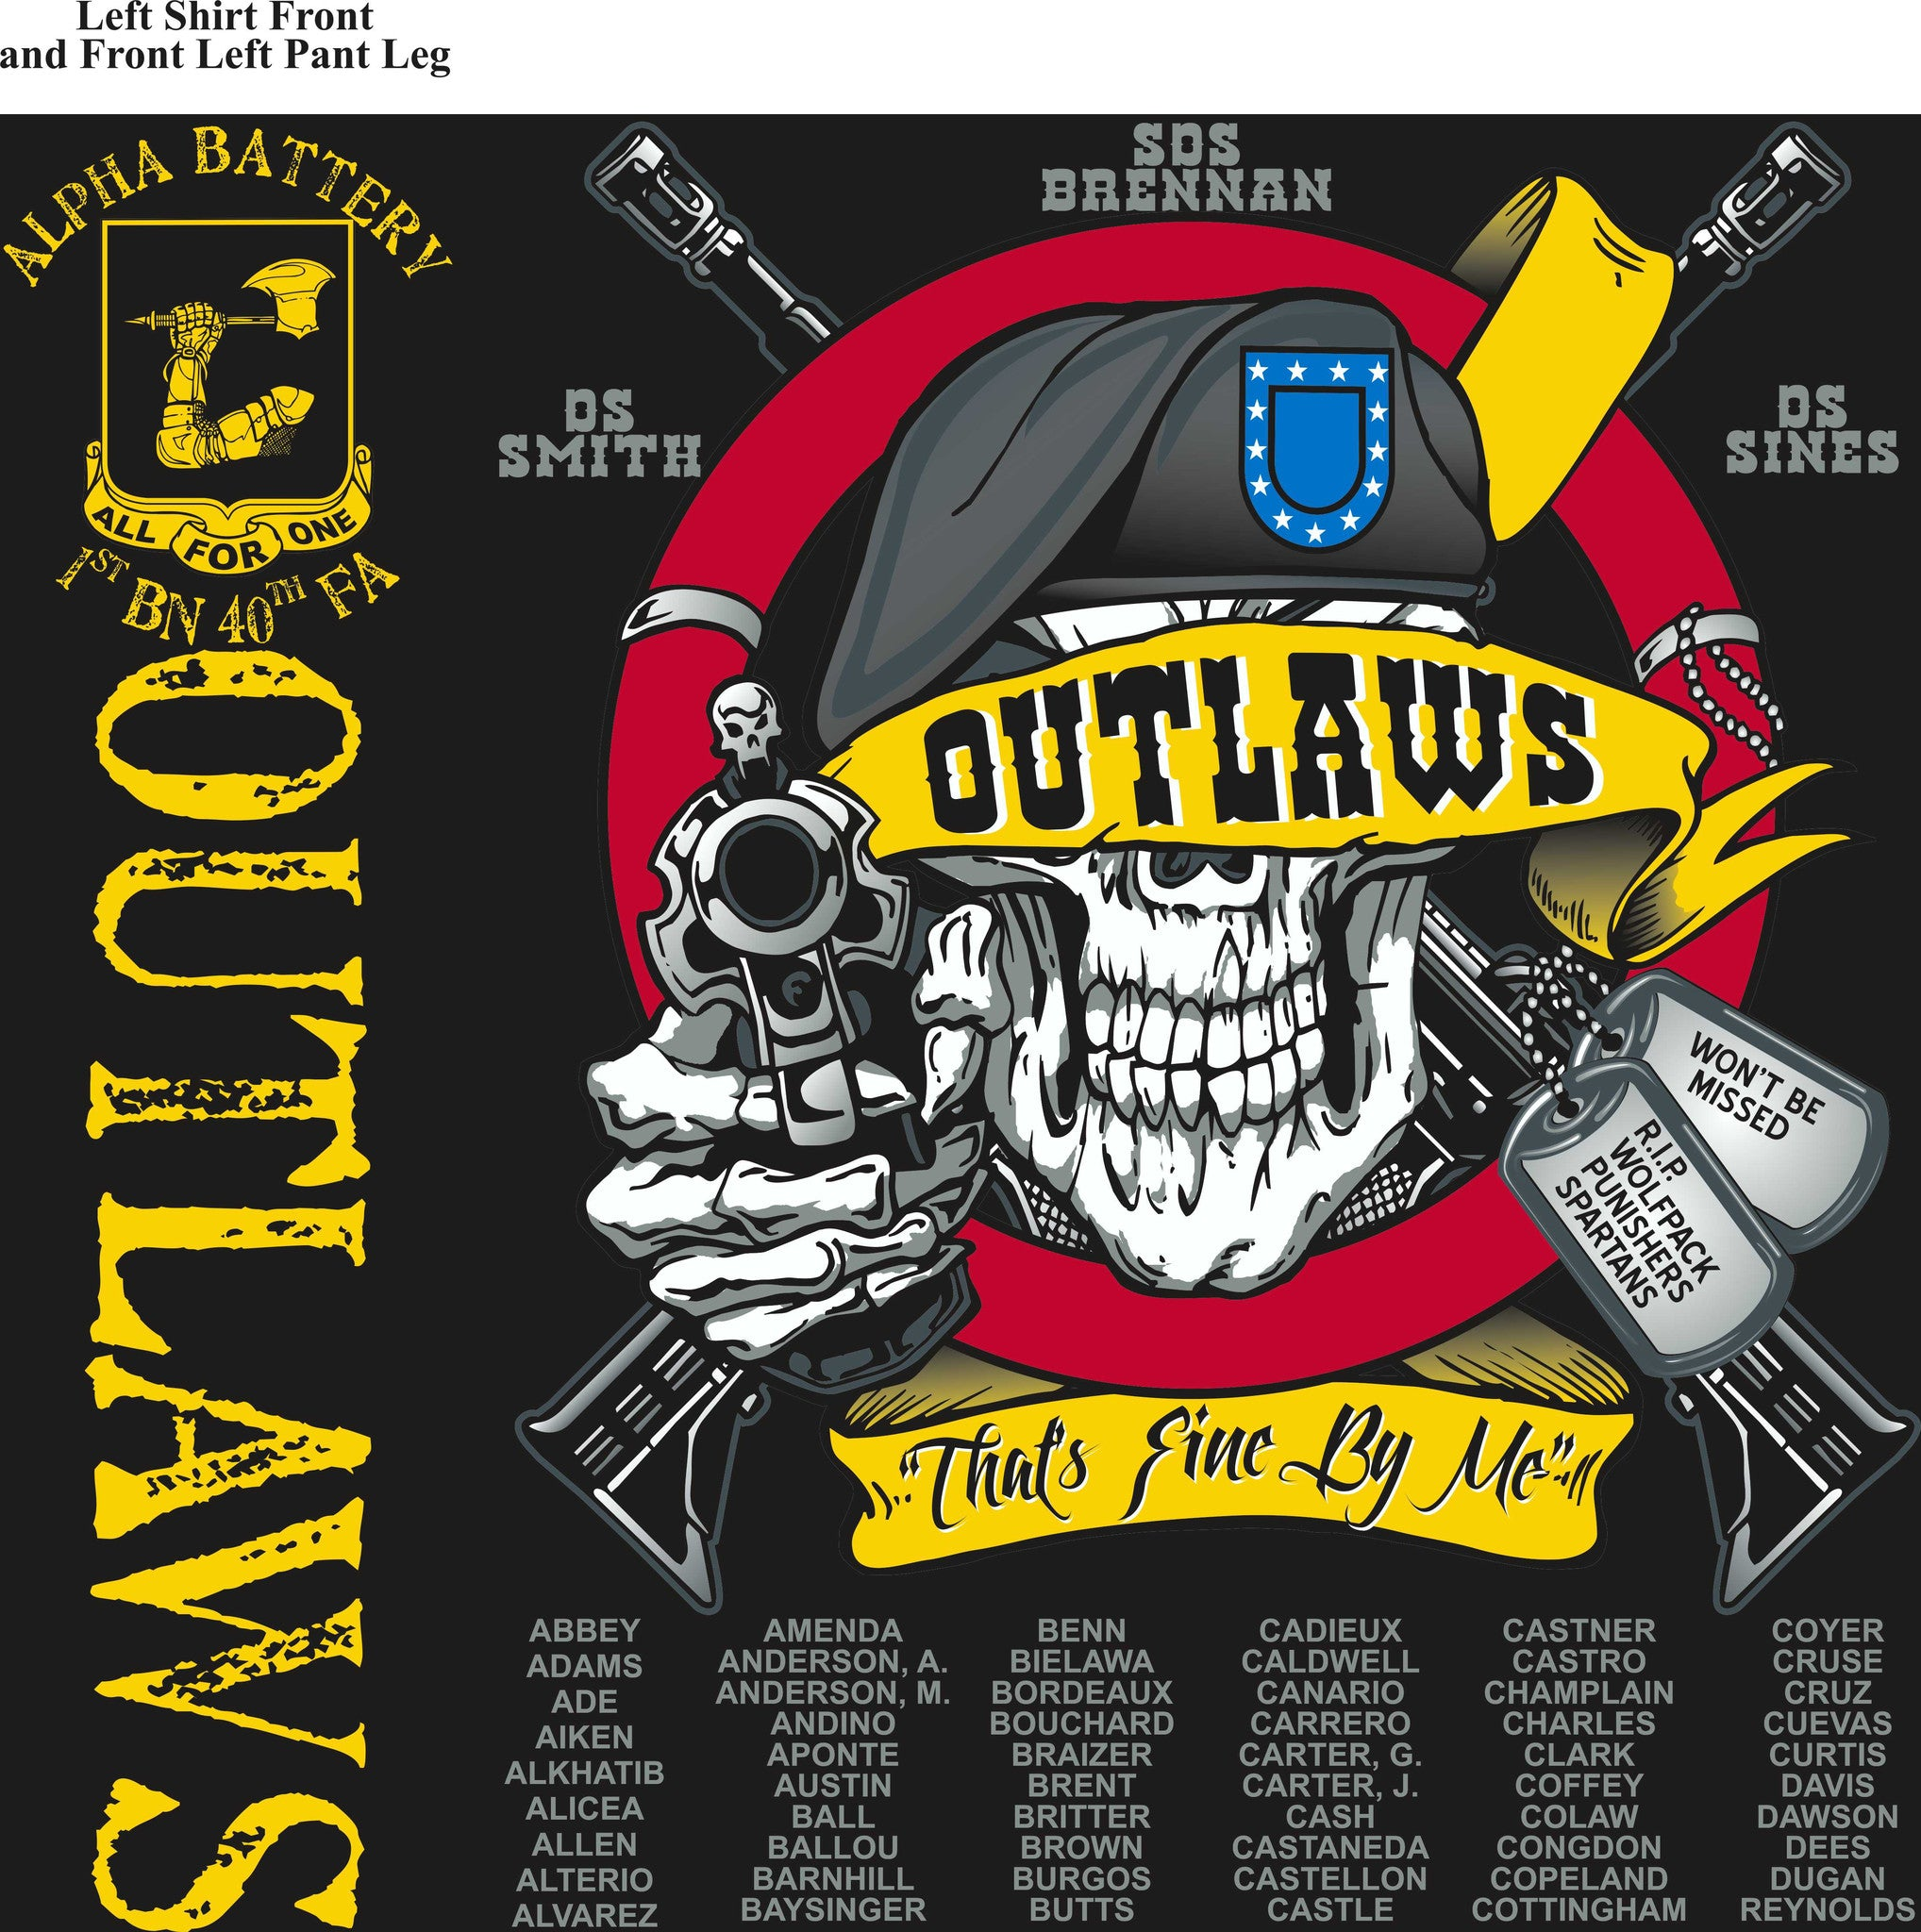 Platoon Shirts (digital) ALPHA 1st 40th OUTLAWS SEPT 2015